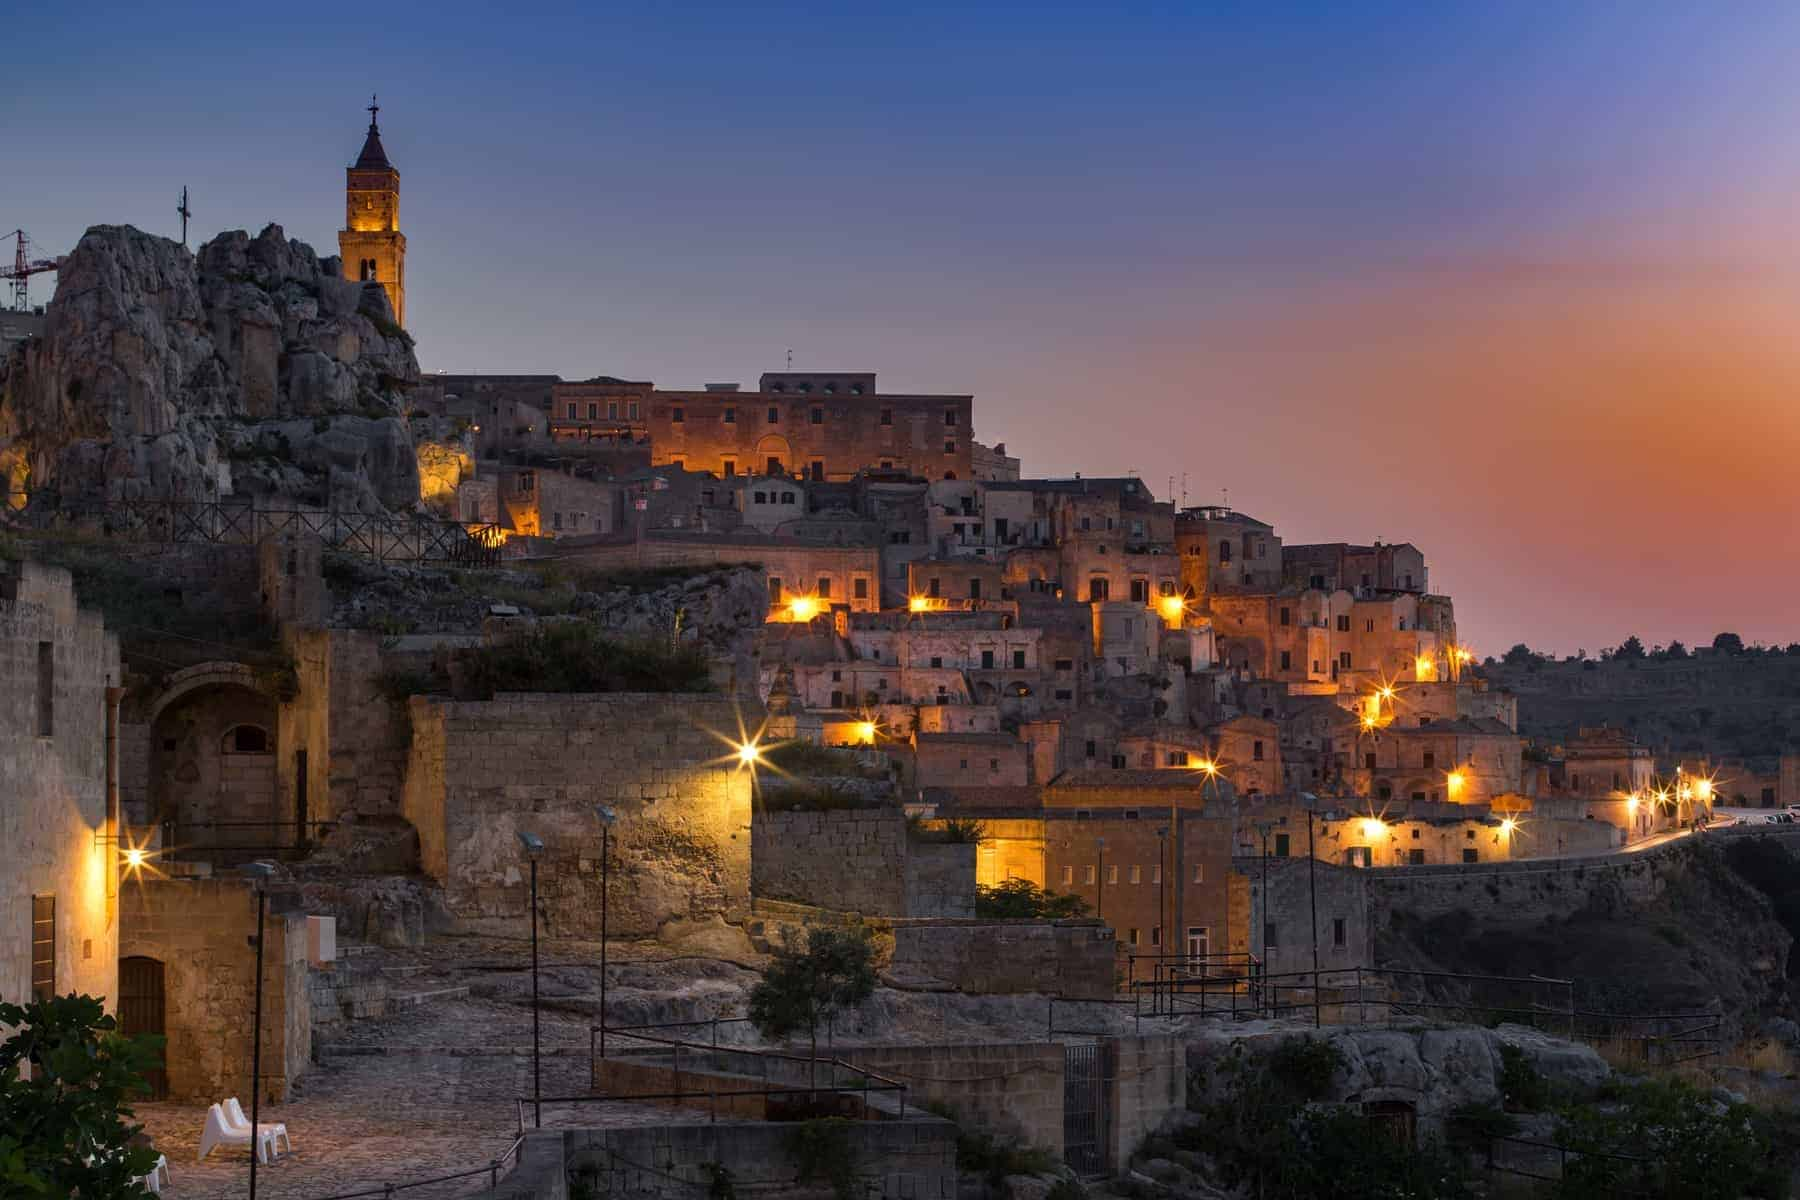 Old town of Matera at dusk, Basilicata region, southern Italy